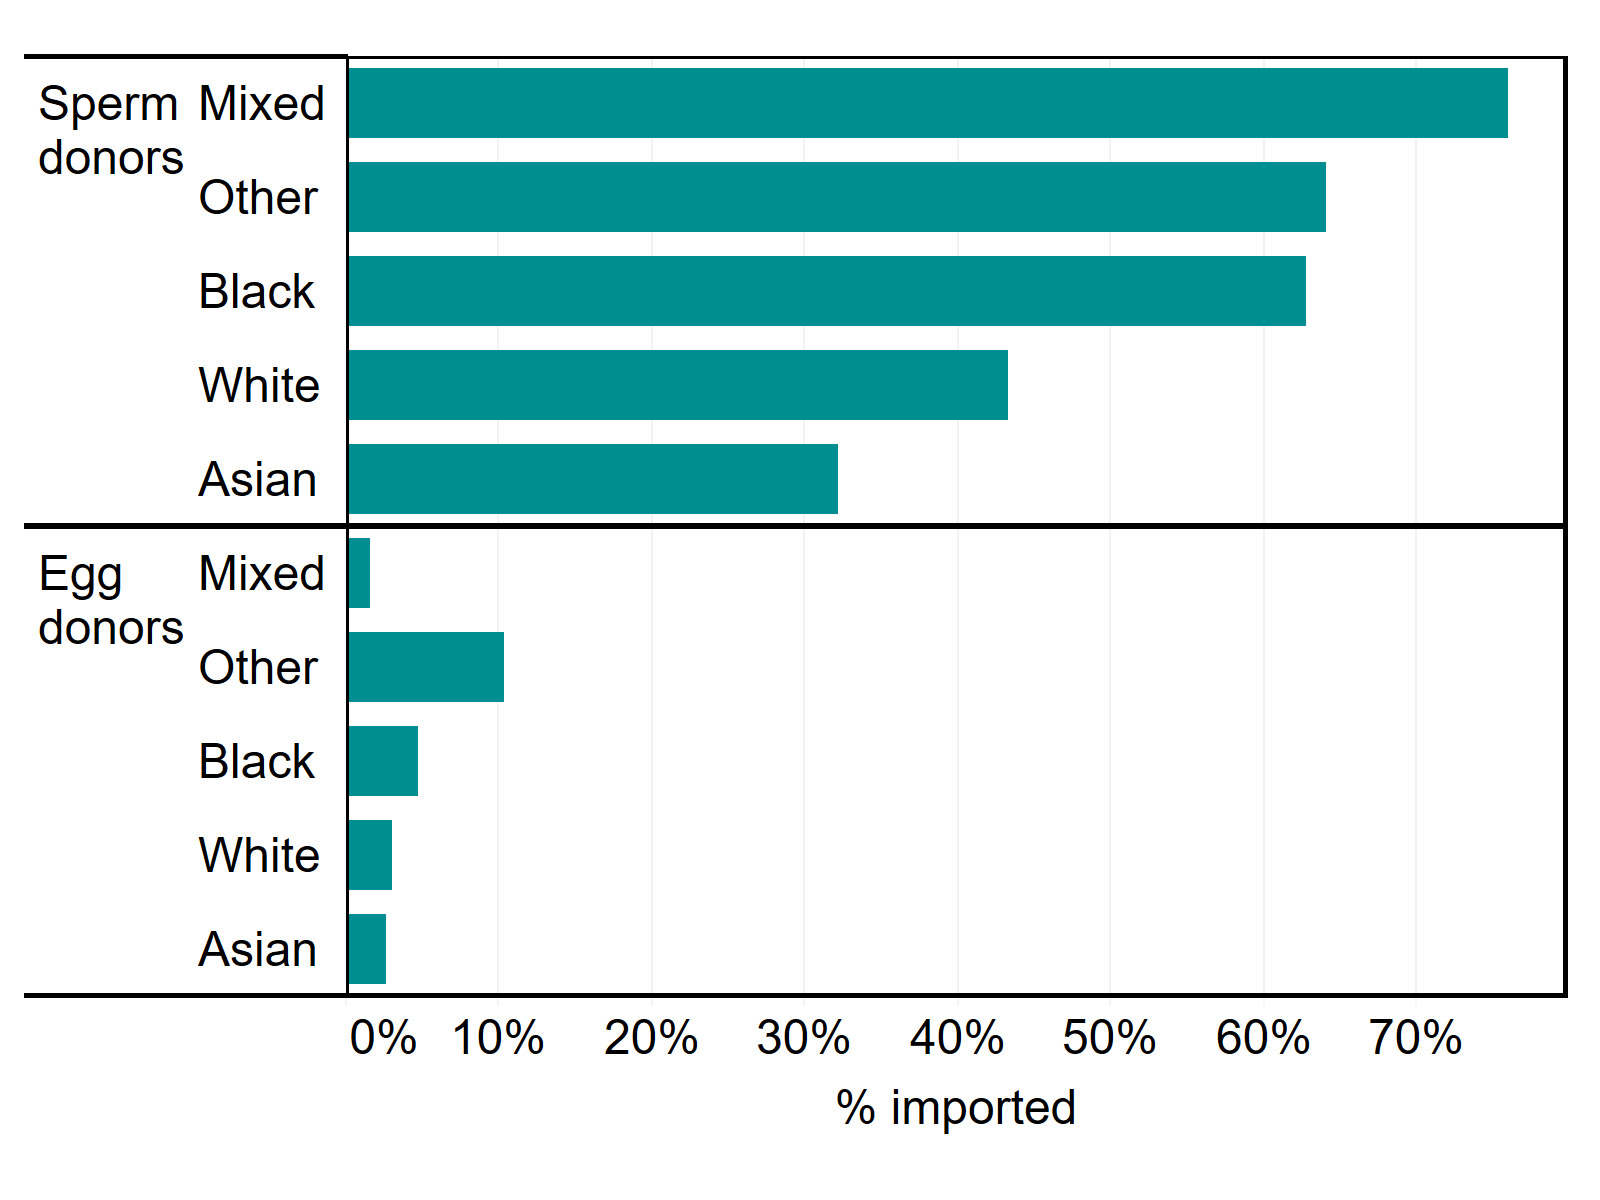 Proportion of sperm and egg donors imported to the UK by ethnicity, 2014-2018. The horizontal bar graph shows the proportion of imported donor egg and sperm by donor ethnicity. Mixed, Other and Black sperm donors were most commonly imported, accounting for 76% of all Mixed, 64% of all Other and 63% of all Black sperm donations. White sperm donations were imported in 43% of all sperm donations and the least common ethnic group for imported sperm was Asian with 32% of Asian sperm donations imported. For egg donation, Other had the highest proportion of imported eggs (10%) followed by Black (5%), White (3%), Asian (3%) and Mixed (2%).